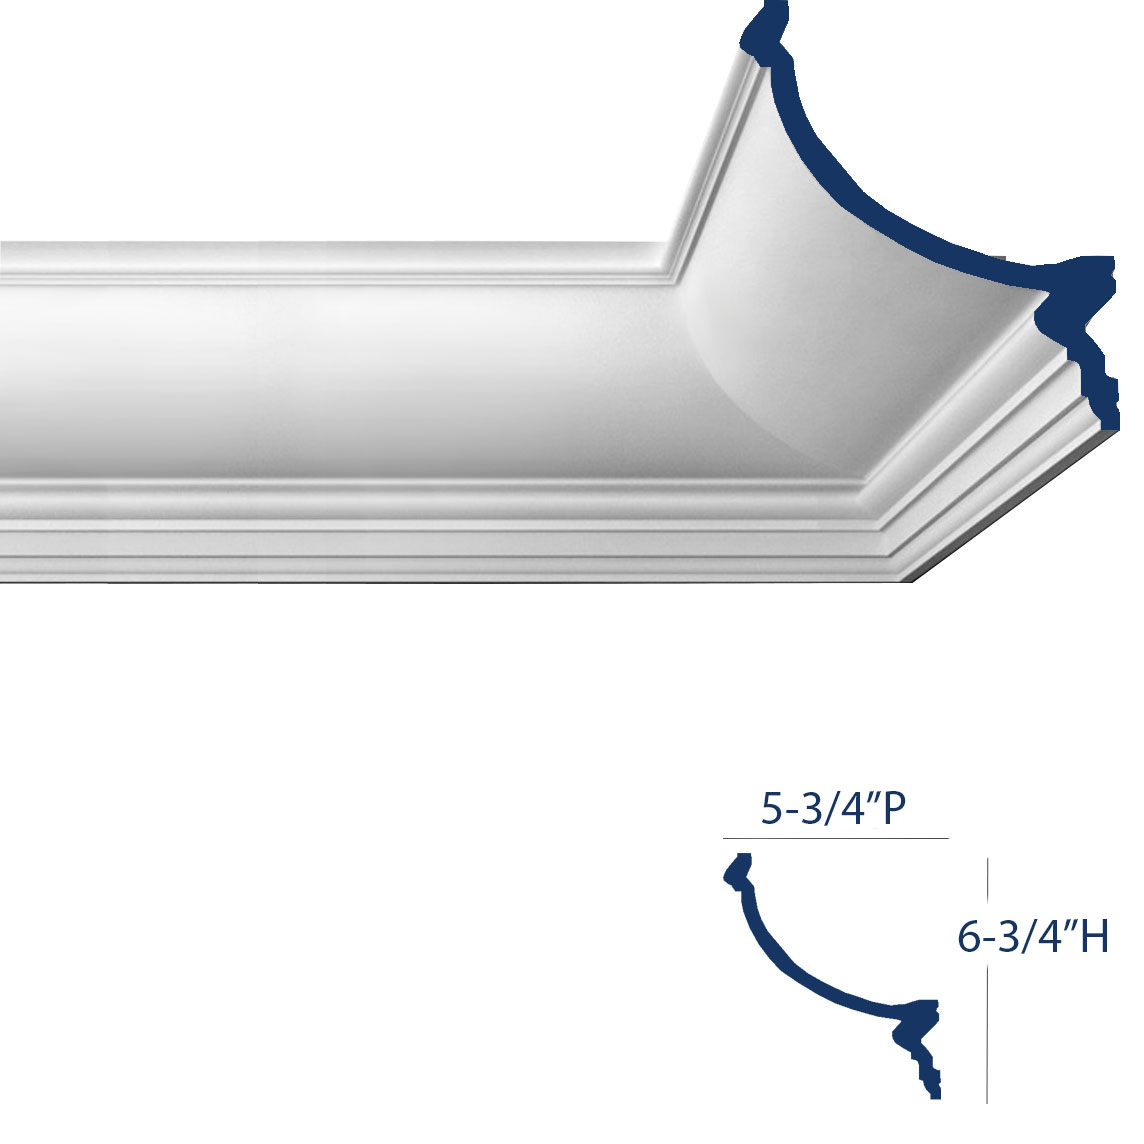 types of crown molding by profile